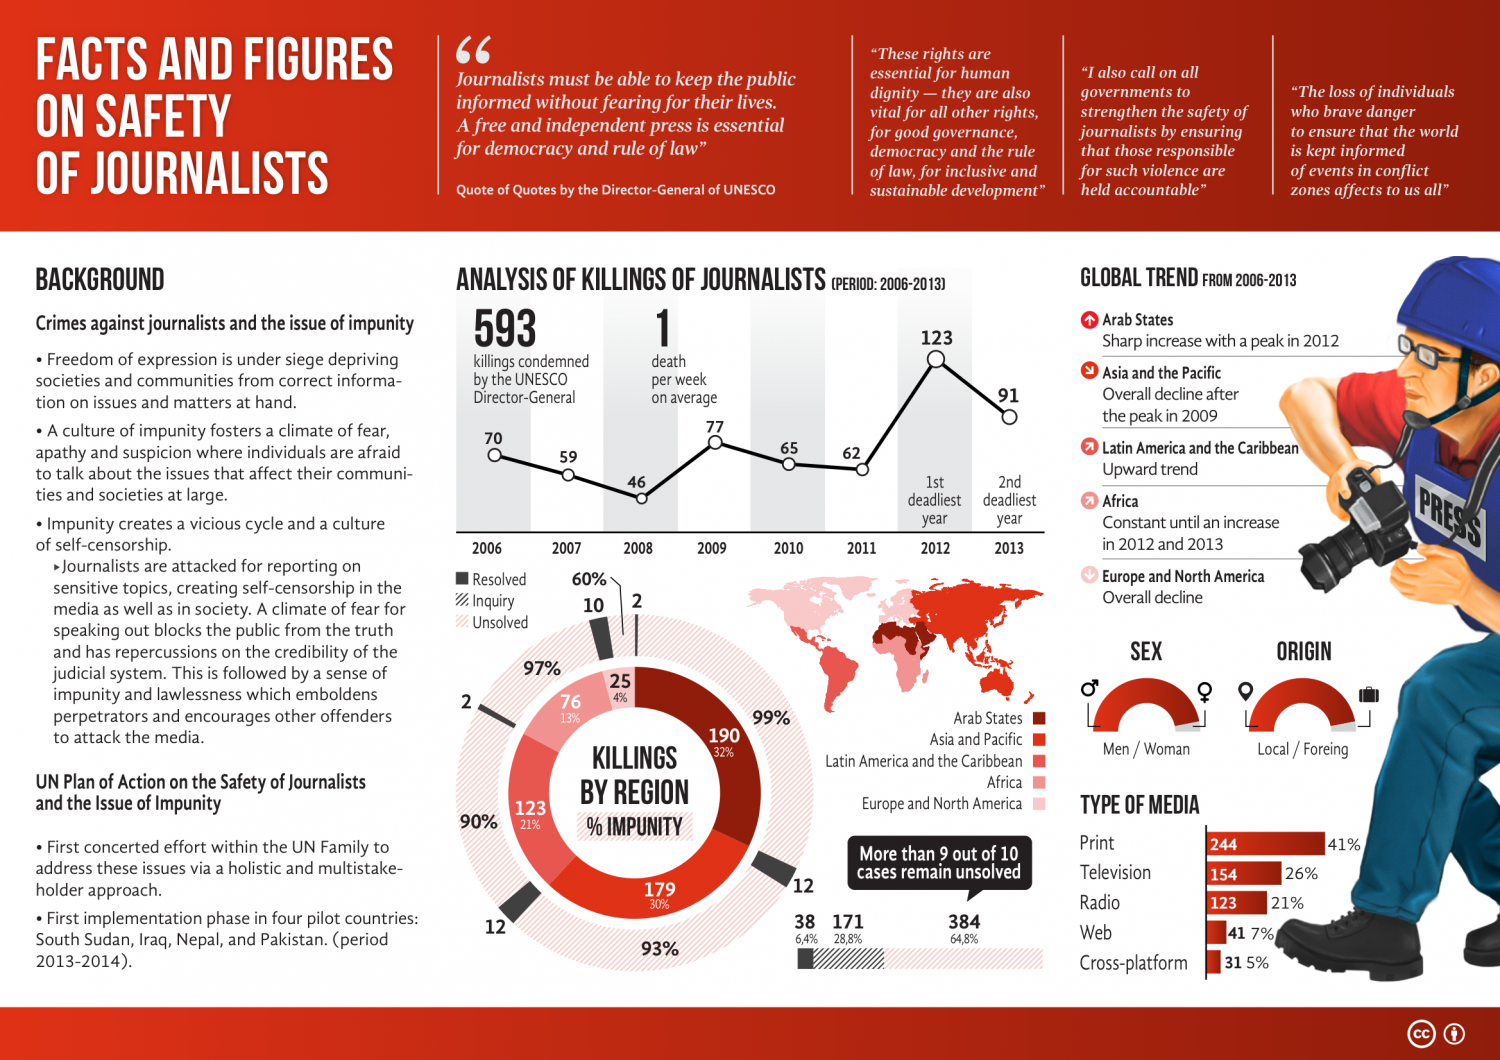 Facts and Figures on Safety of Journalists Infographic